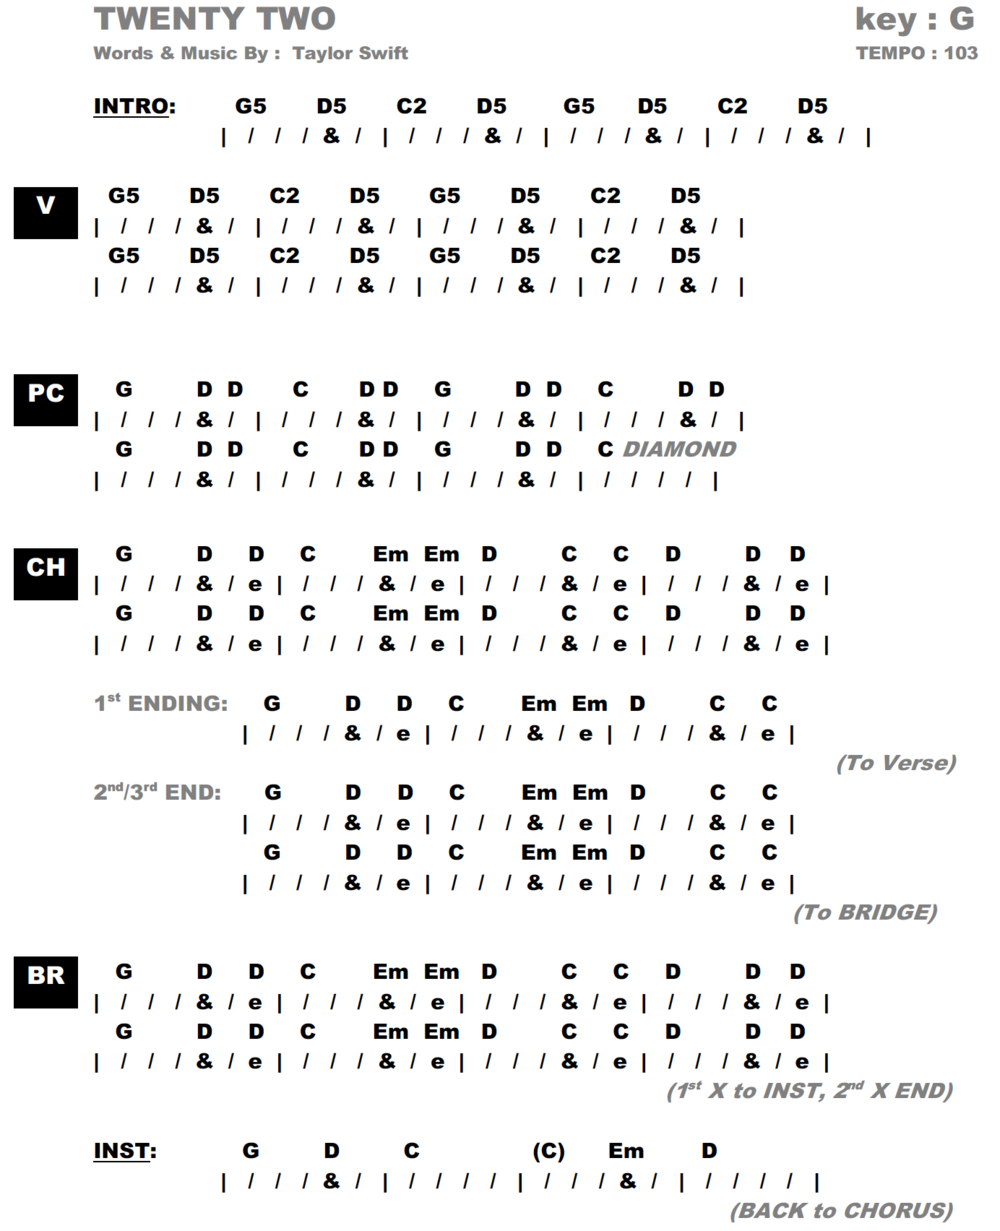 22 - Chords (G).png